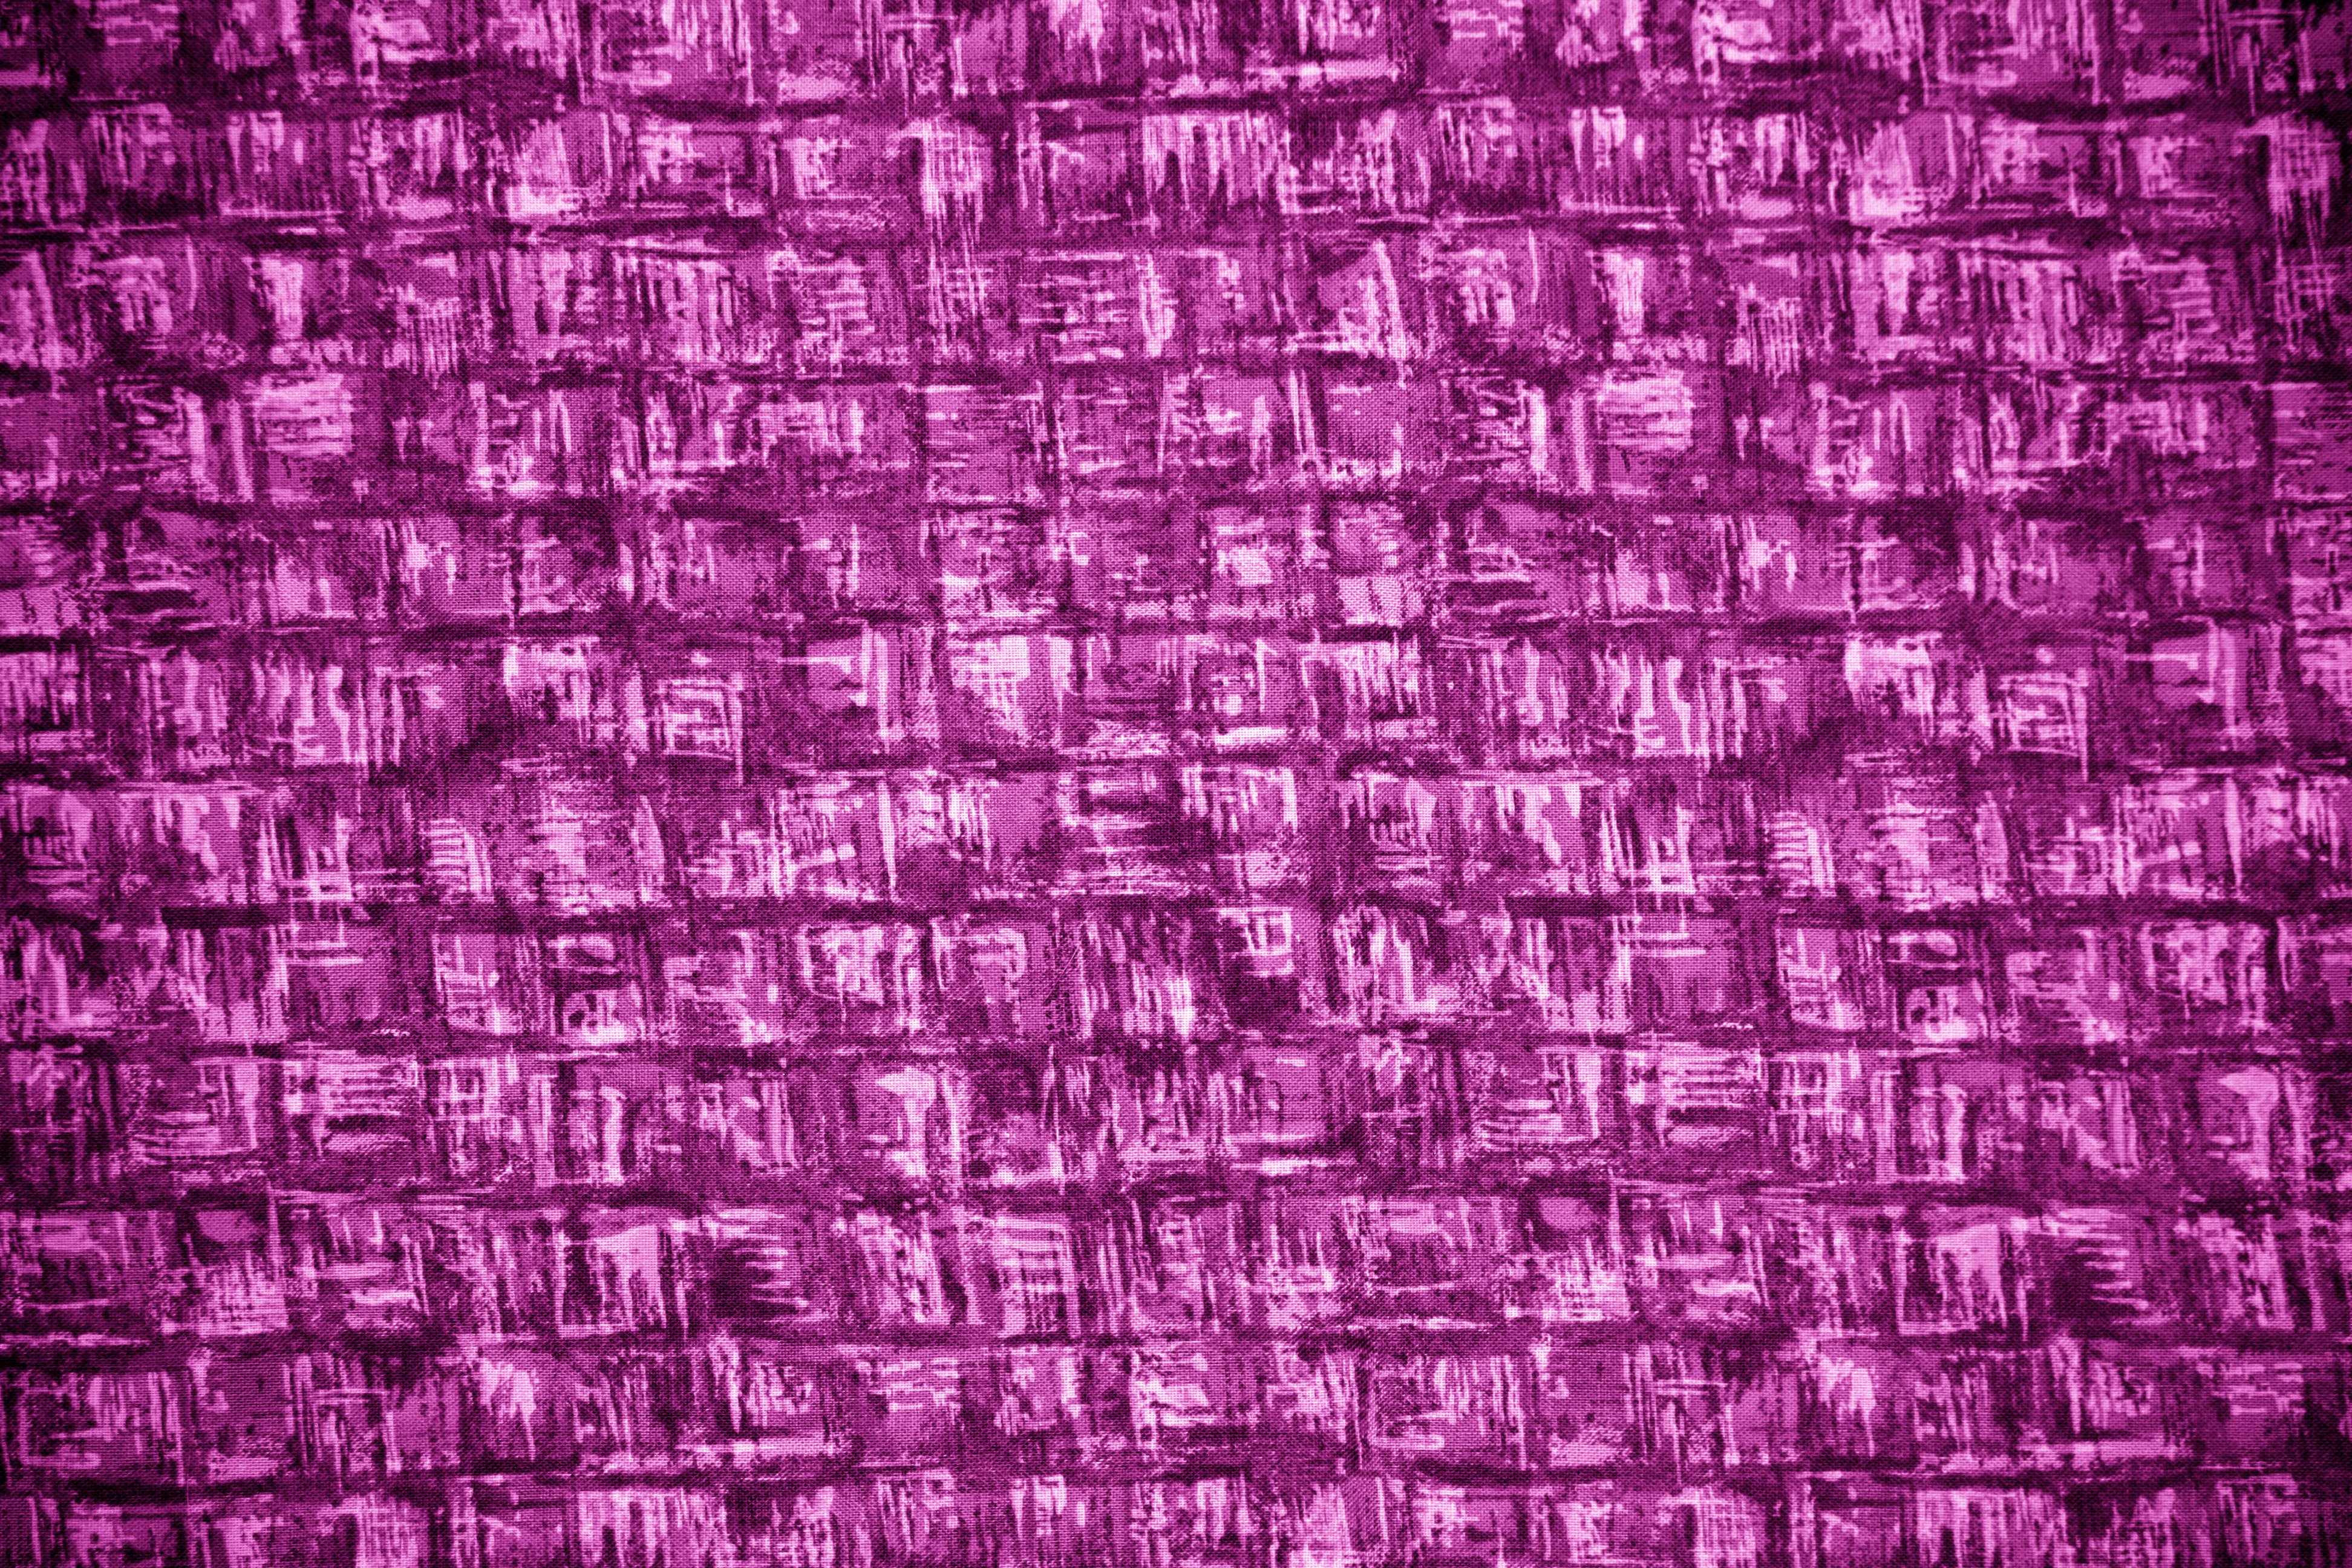 Pink fabric texture free high resolution photo dimensions 3888 - Magenta Abstract Squares Fabric Texture